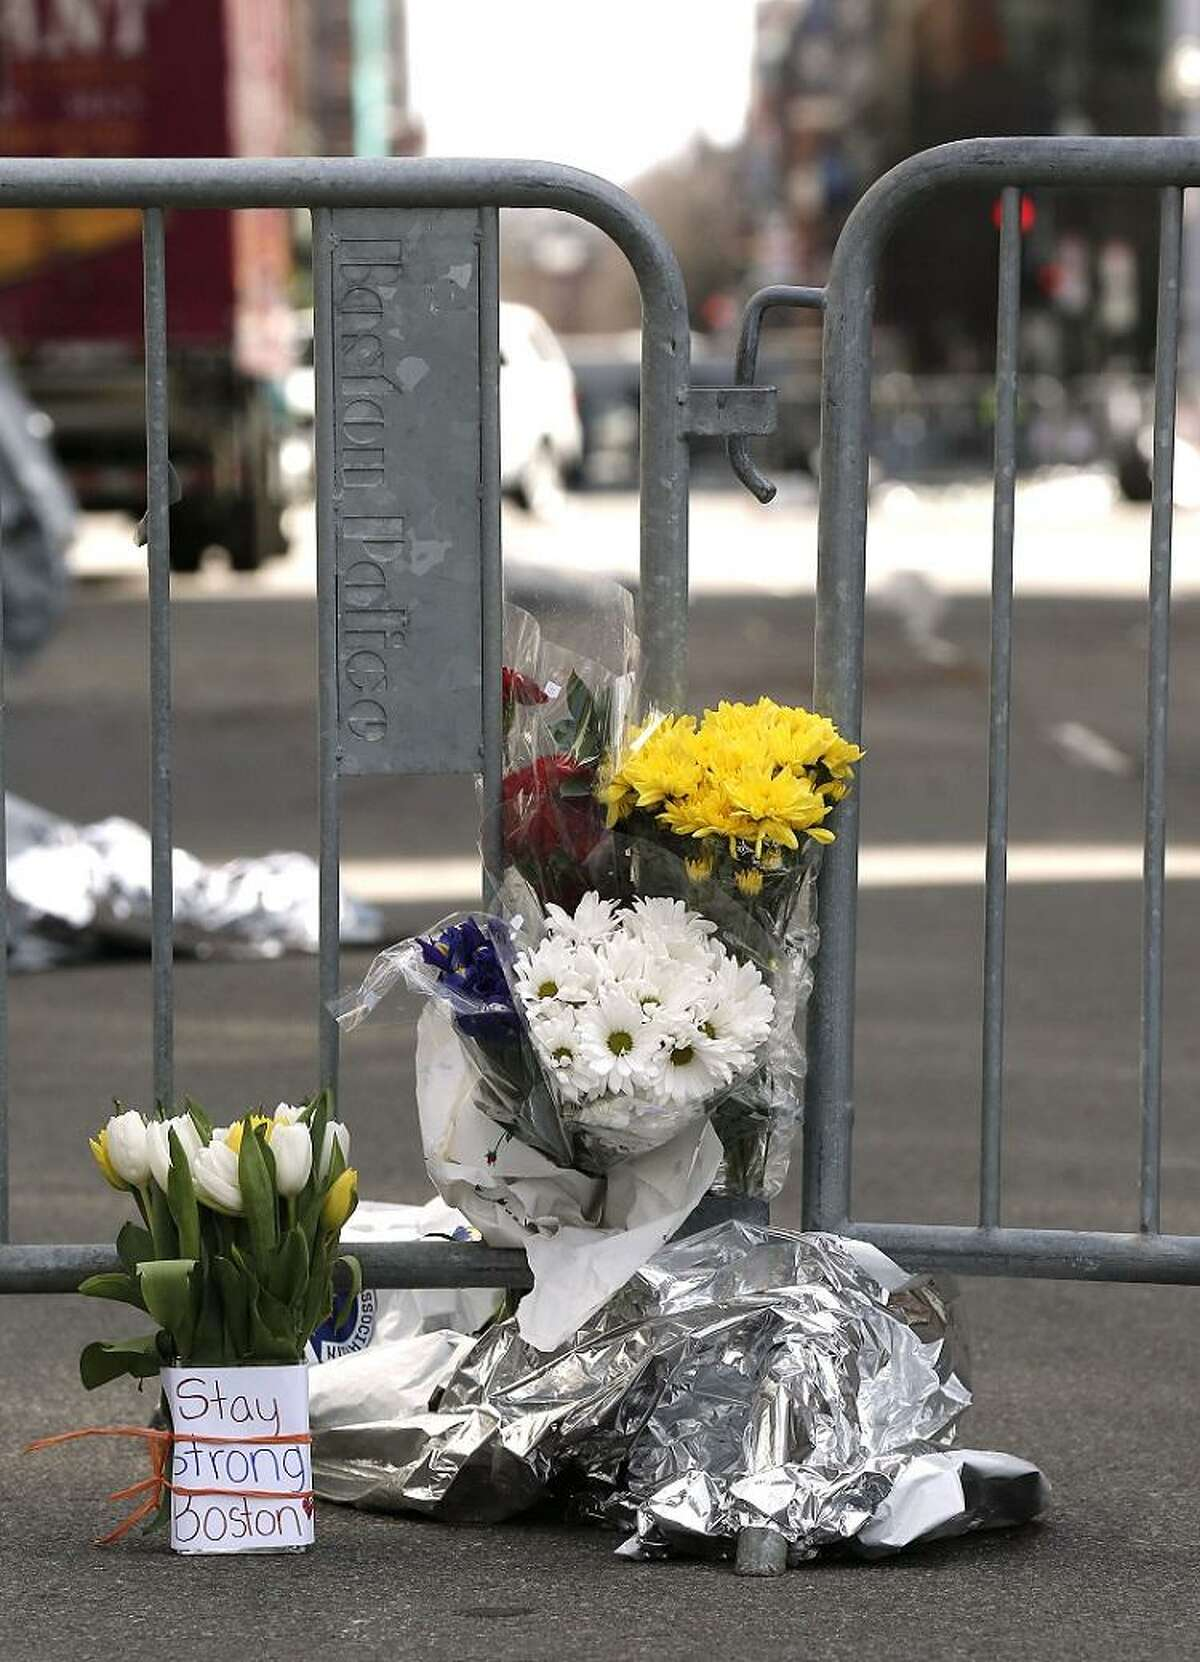 Flowers sit at a police barrier near the finish line of the Boston Marathon in Boston Tuesday, April 16, 2013. Explosions at the finish of the Marathon Monday Killed at least 3 people and injured over 170. (AP Photo/Winslow Townson)